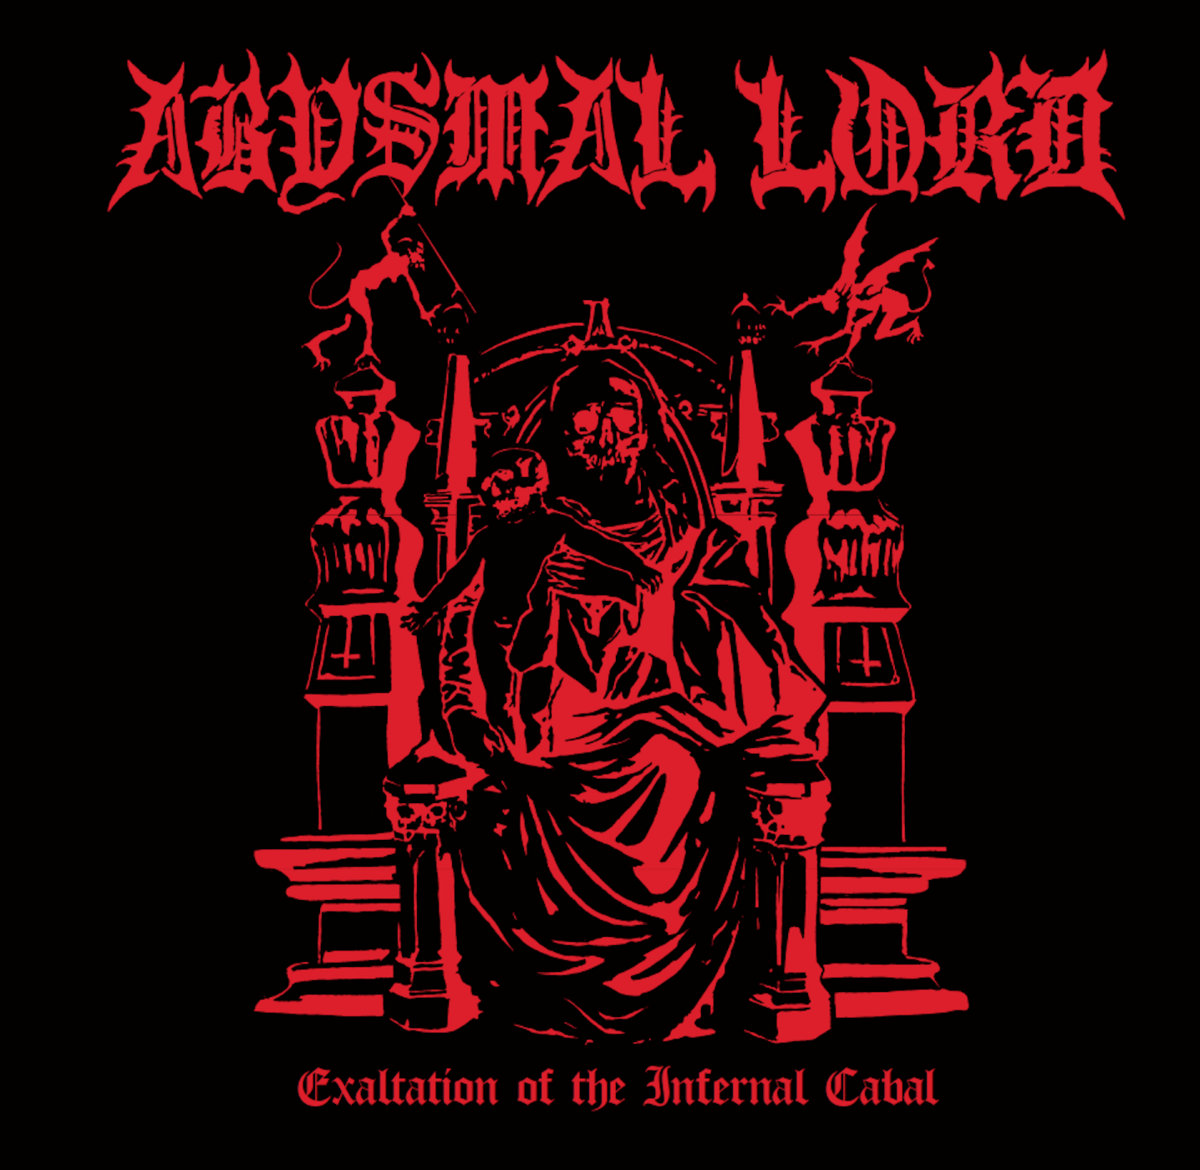 Exaltation Of The Infernal Cabal | ABYSMAL LORD